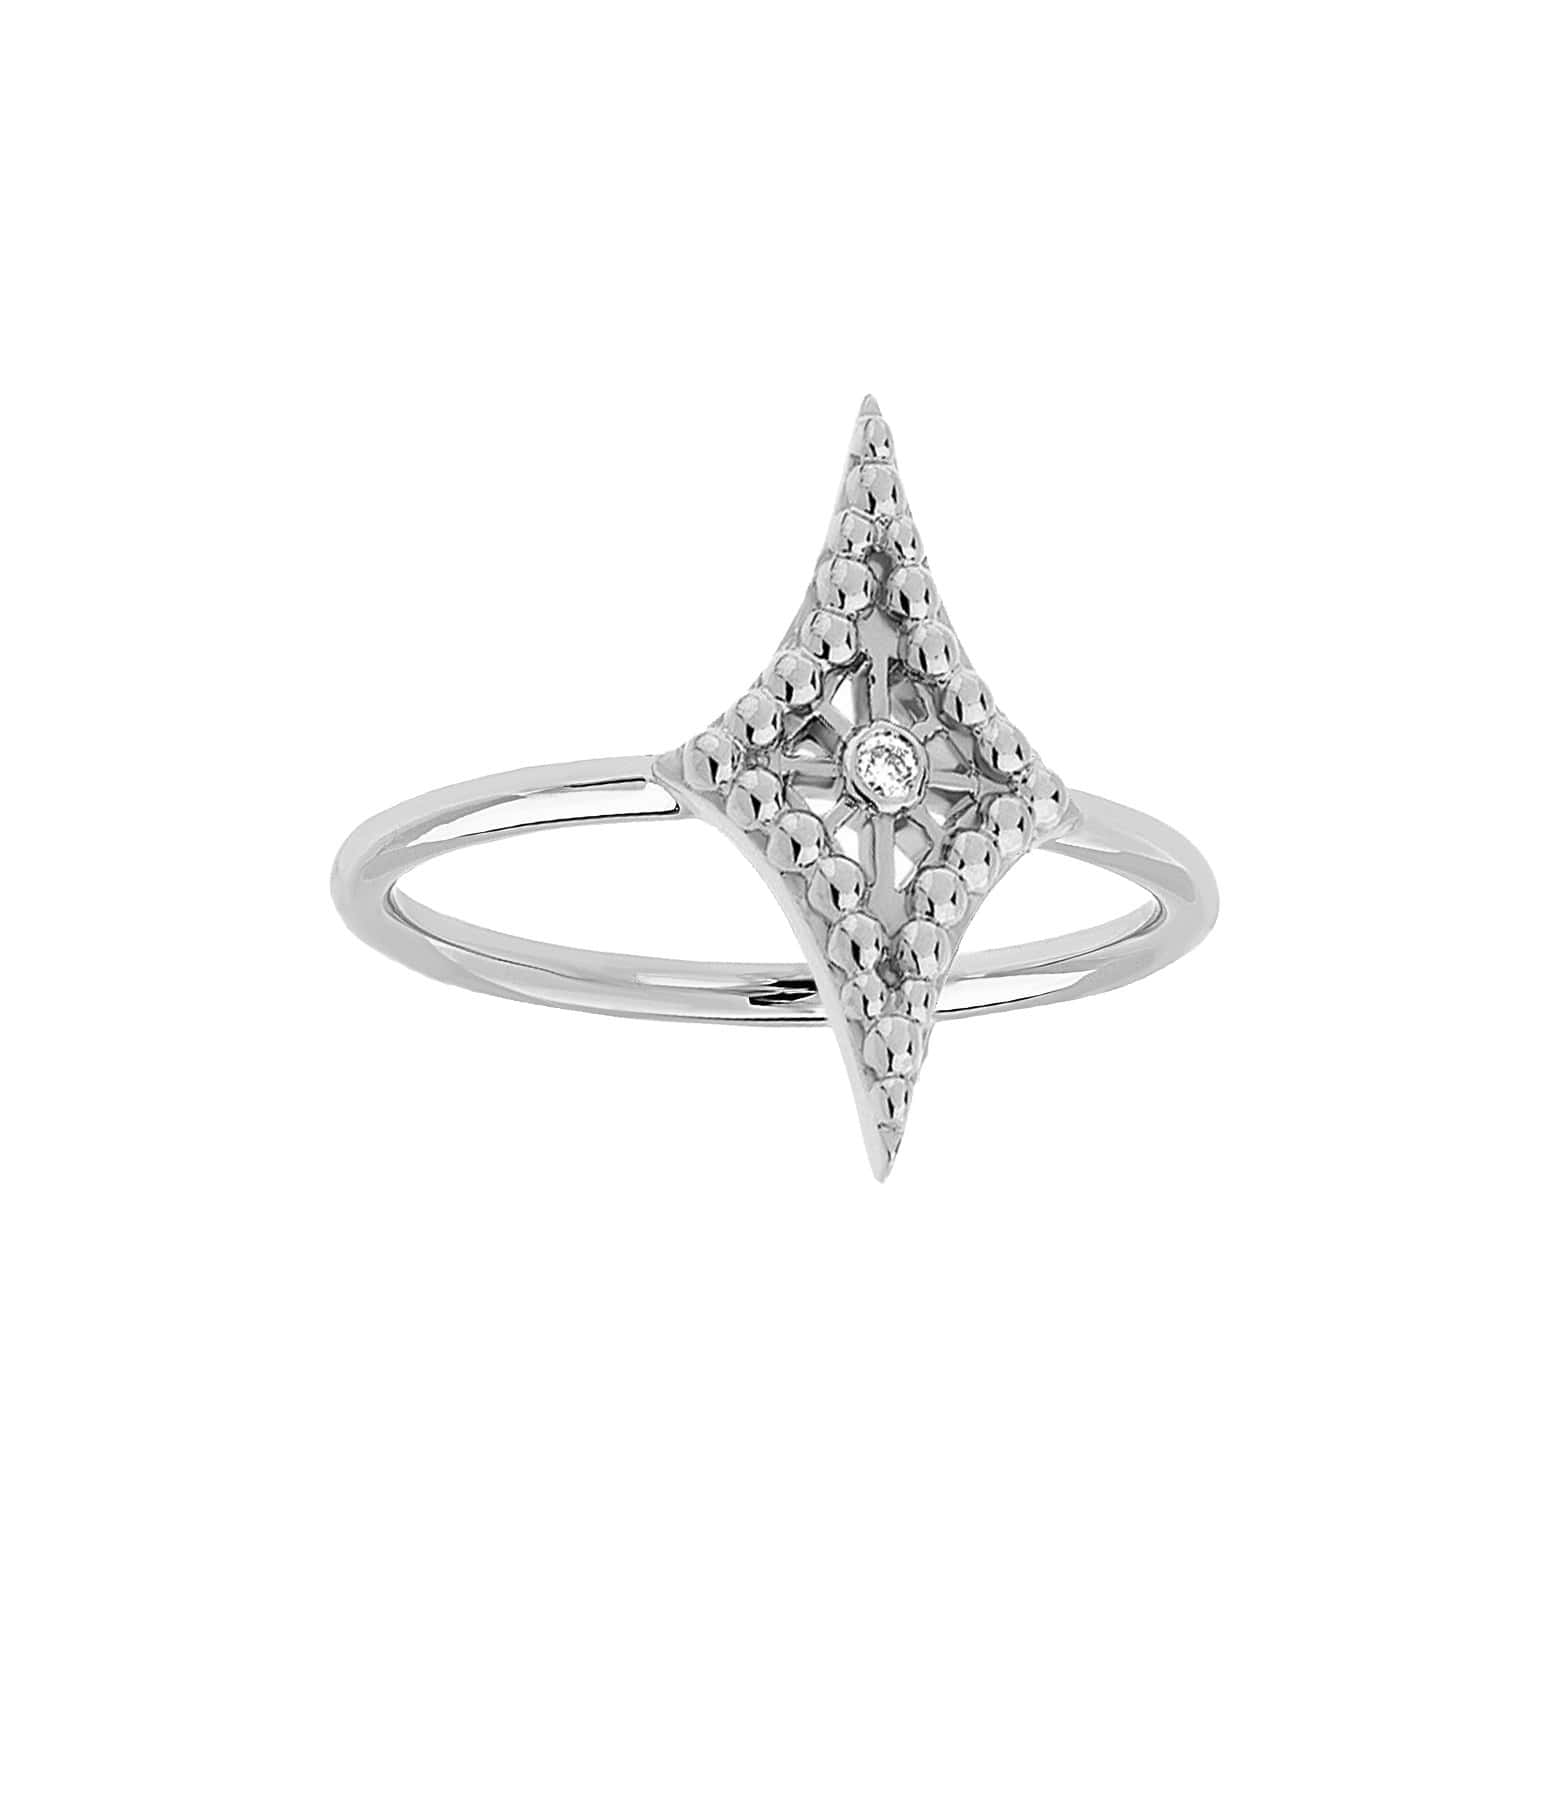 NAVA JOAILLERIE - Bague Mini-Cheyenne Losange Diamants Or Blanc